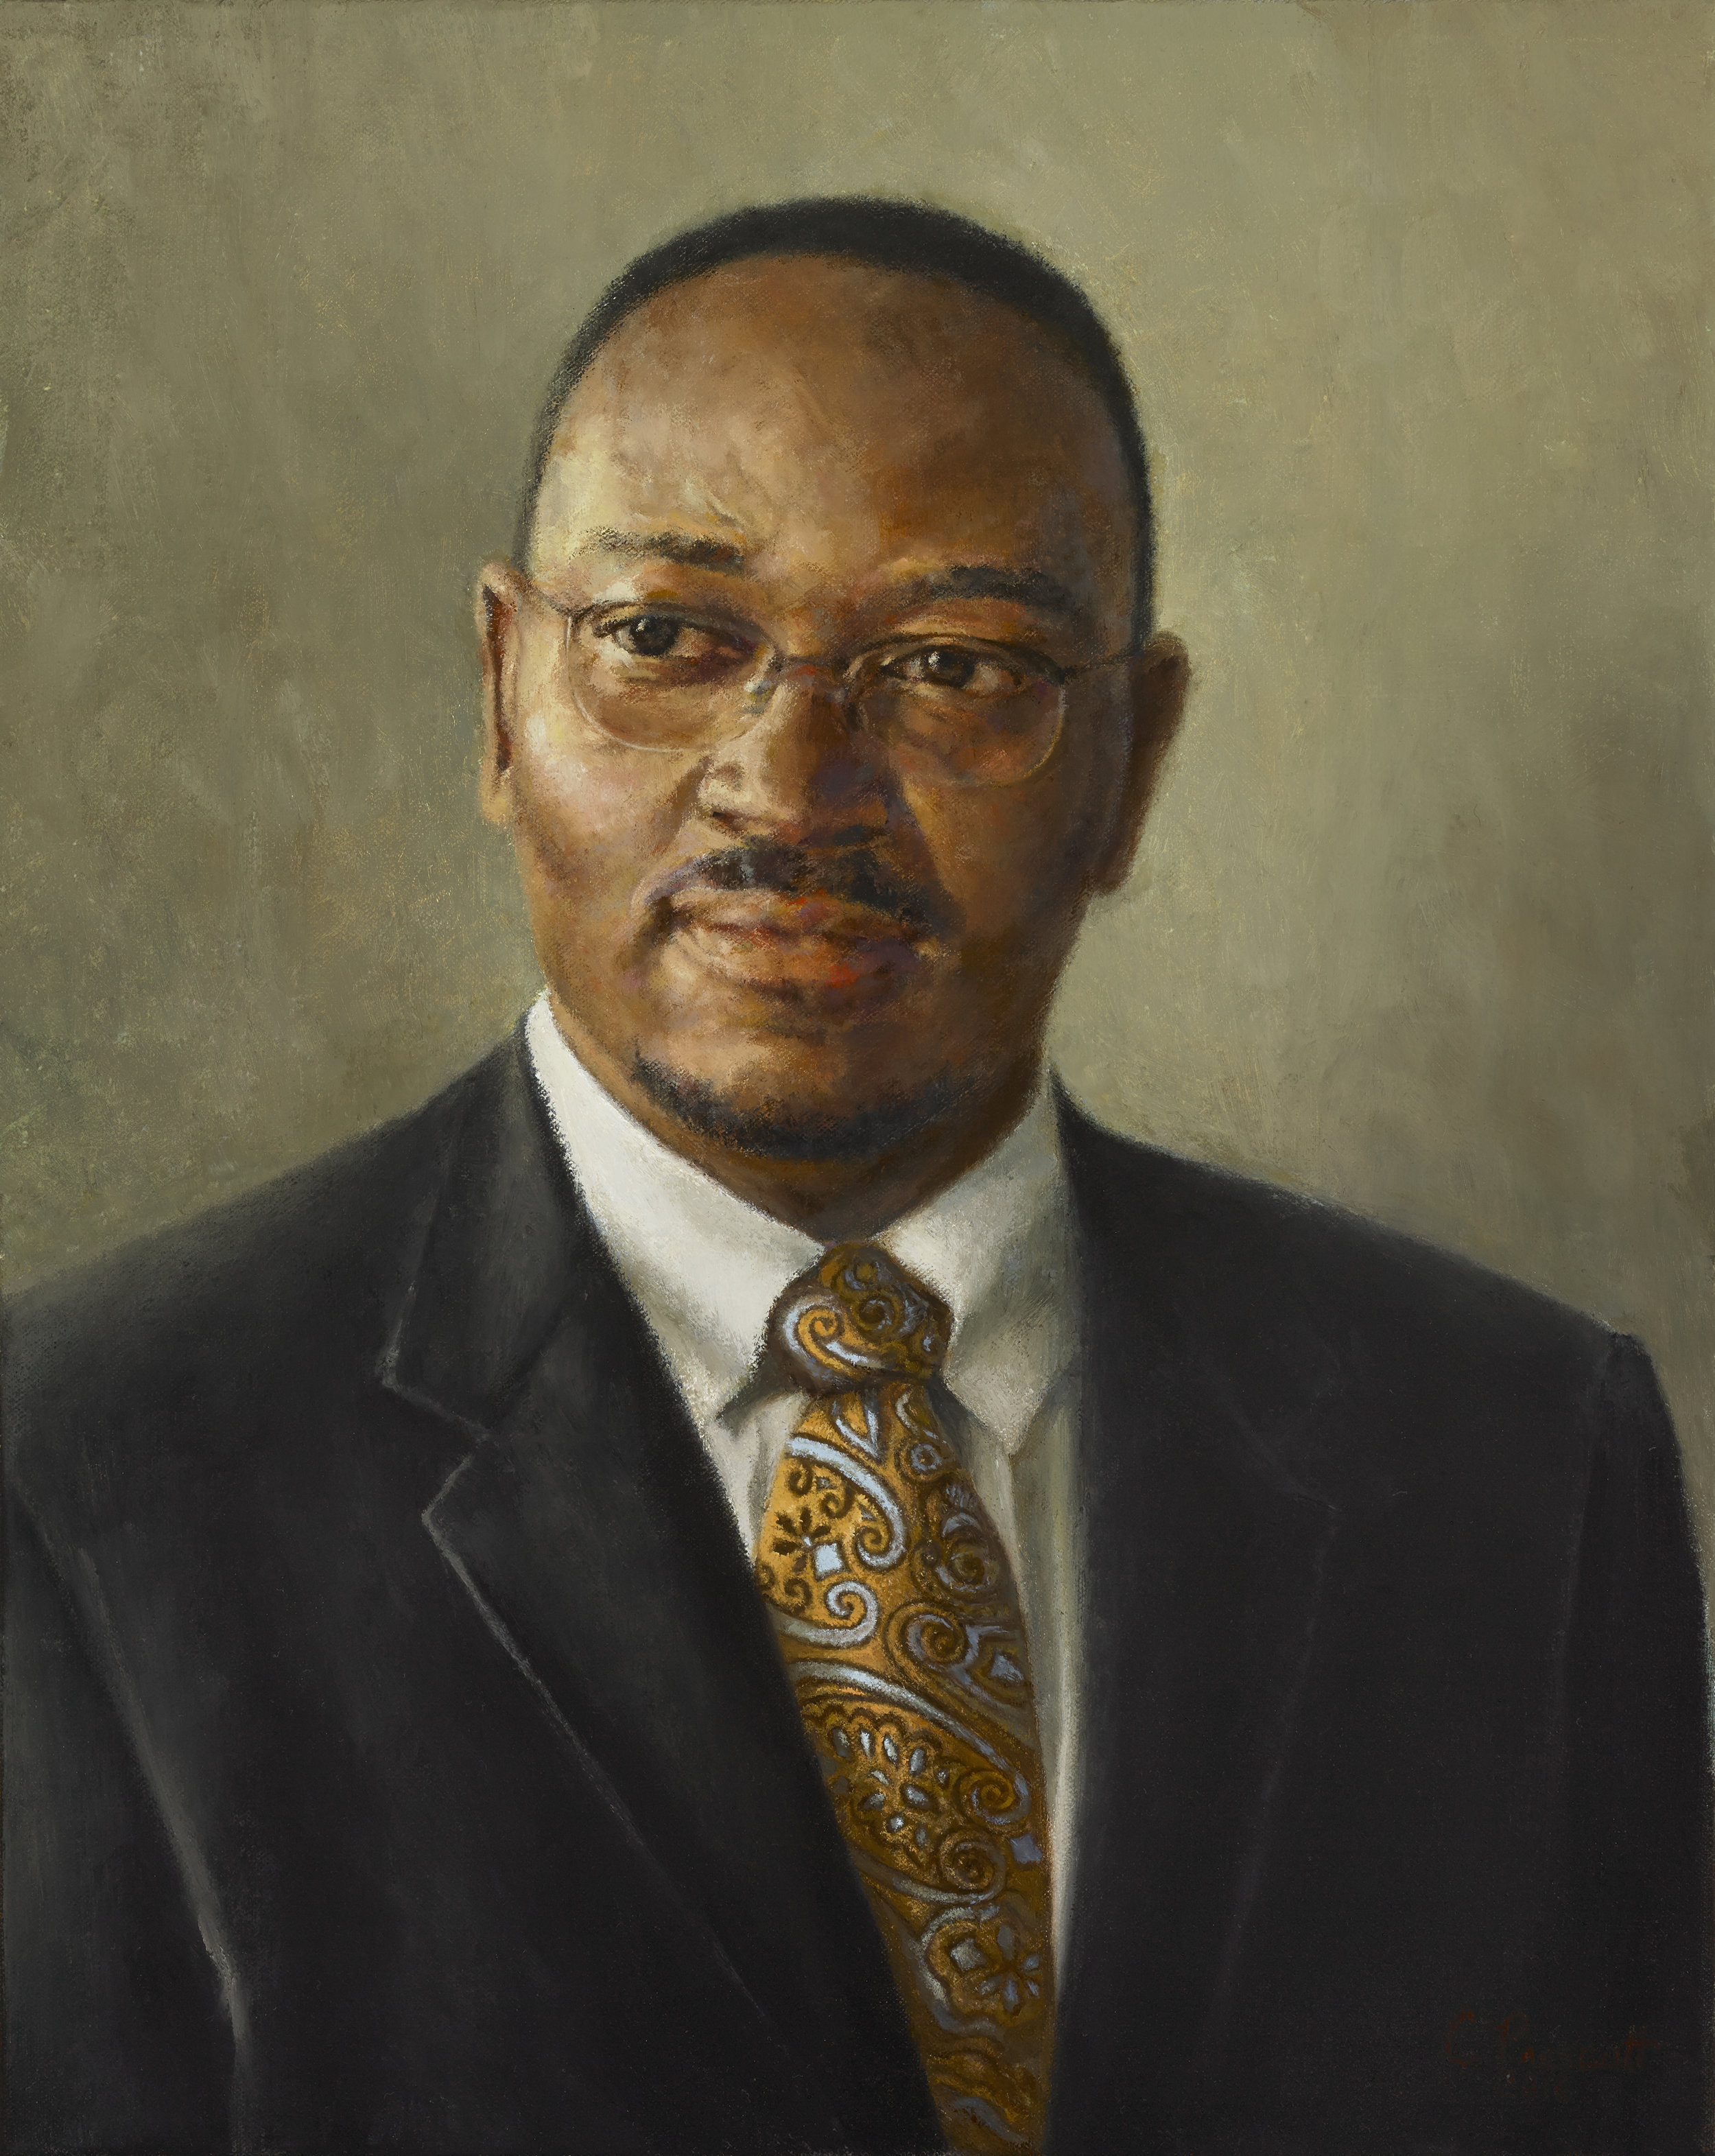 "The Honorable Reverend Clementa C. Pinckney,  2016, Oil on Canvas, 20"" x 16"", Private Collection  Pastor of Emanuel AME Church, Charleston, and one of the nine killed June, 2015"